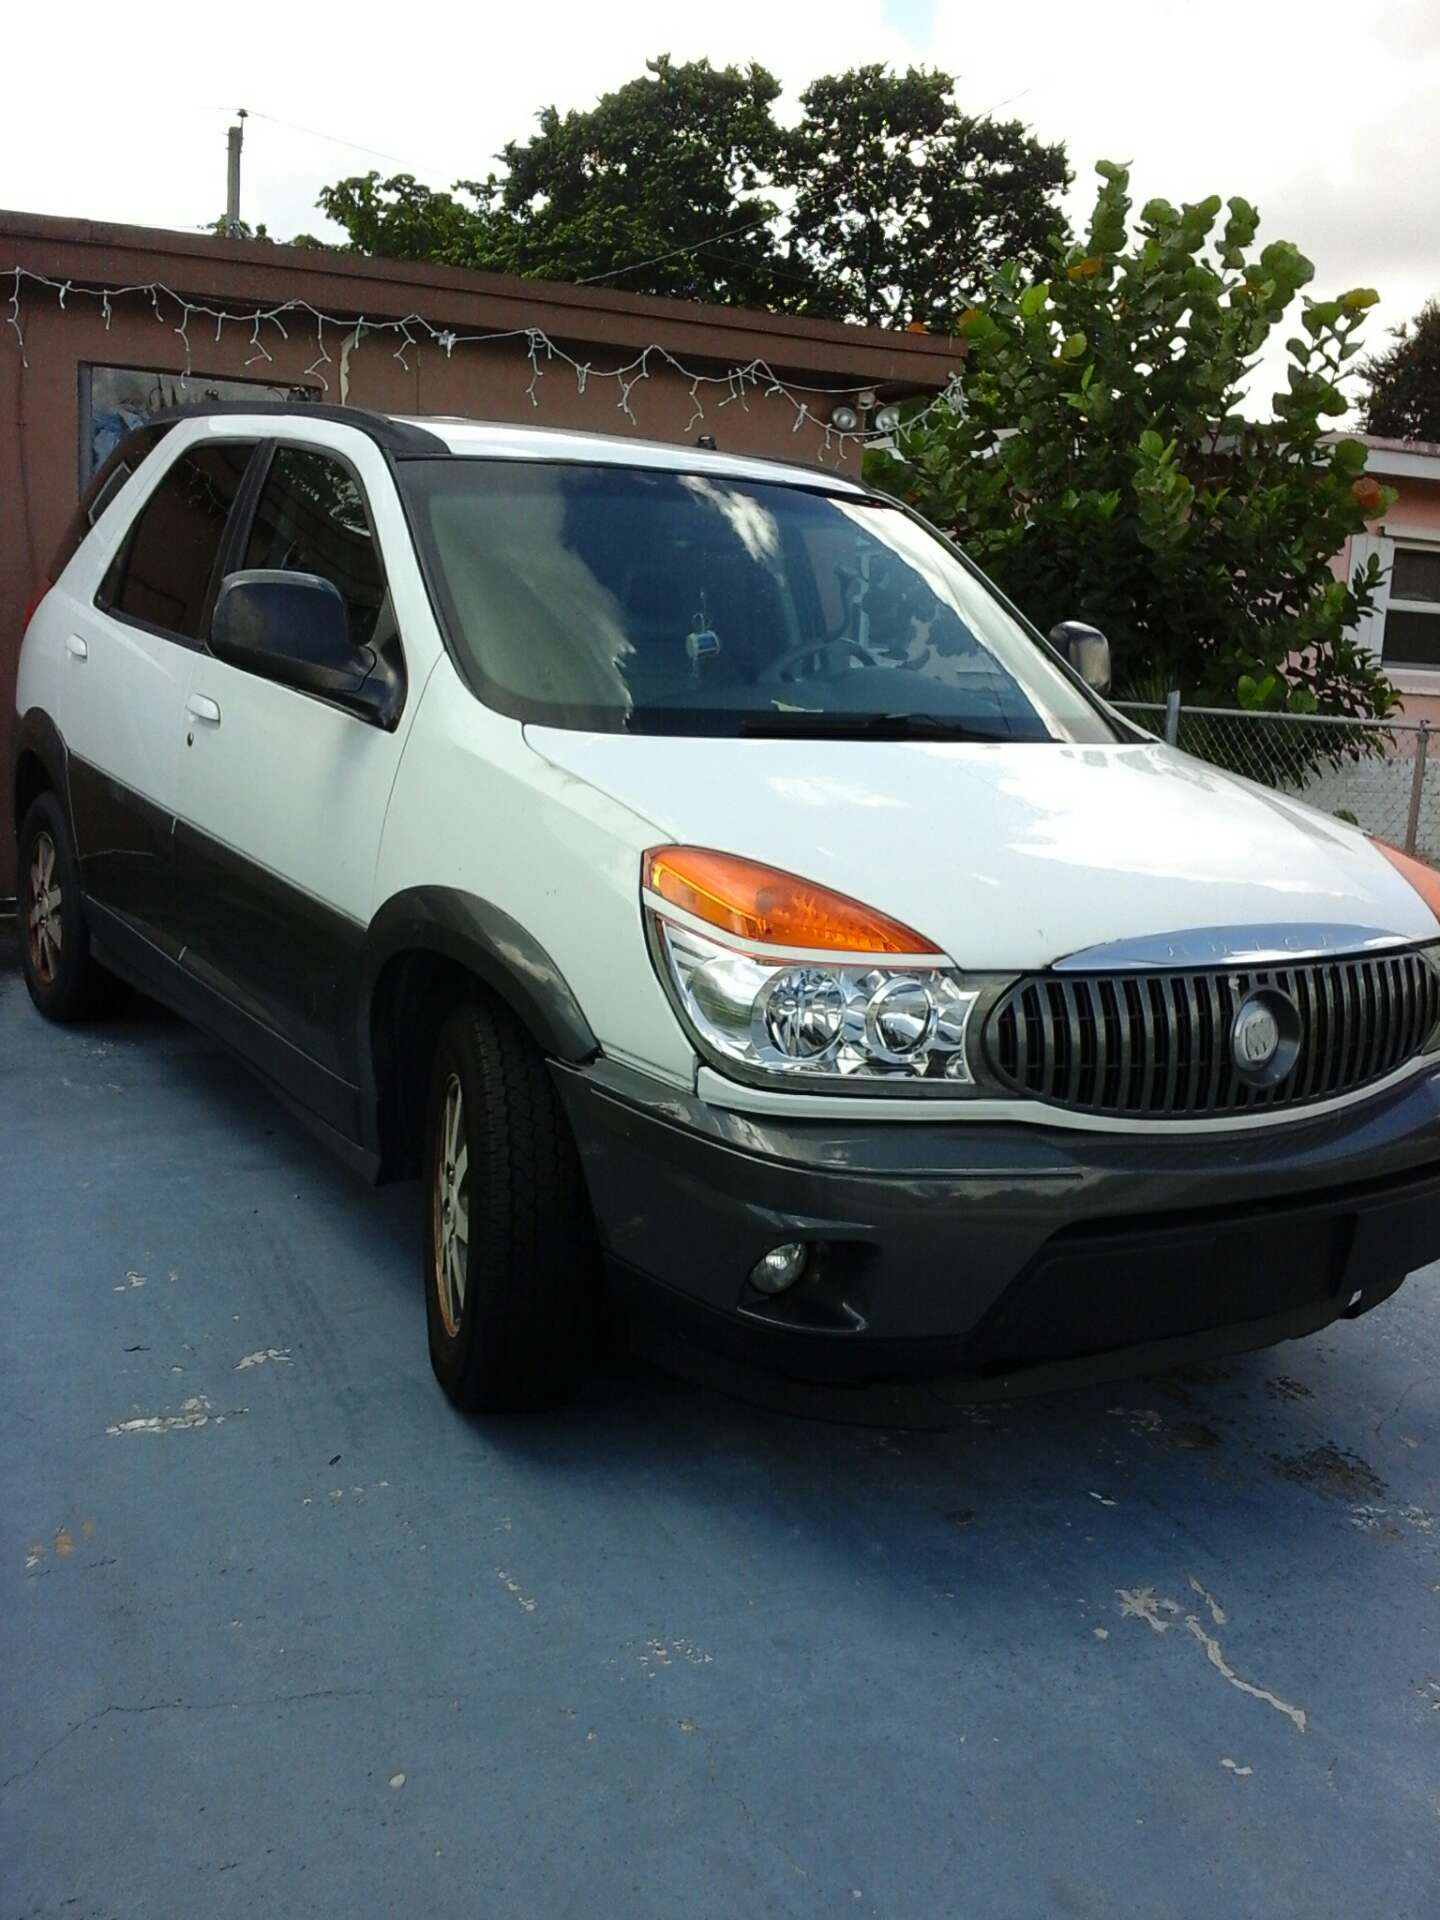 2002 buick rendezvous for sale in miami gardens fl 5miles buy and sell. Black Bedroom Furniture Sets. Home Design Ideas